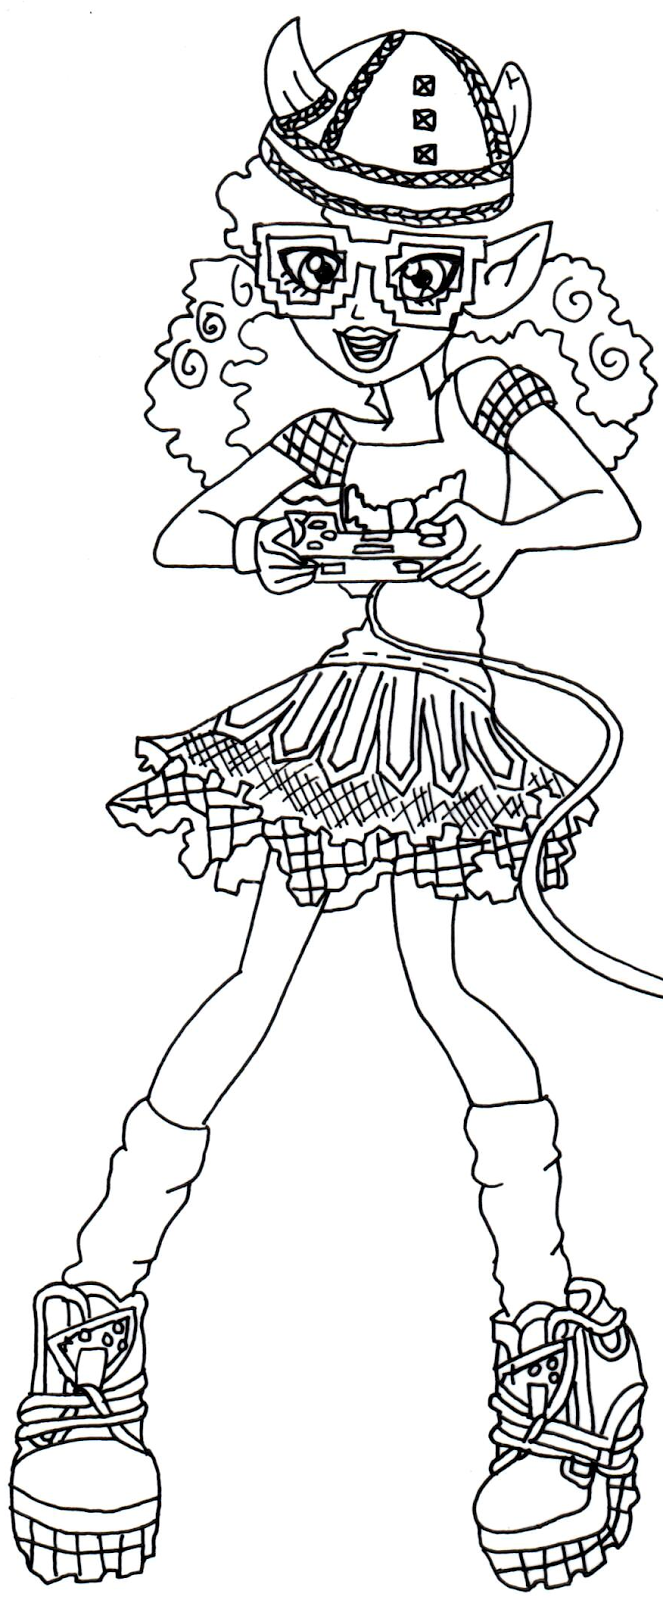 kjersti trollson monster high coloring page png 663 1600 2